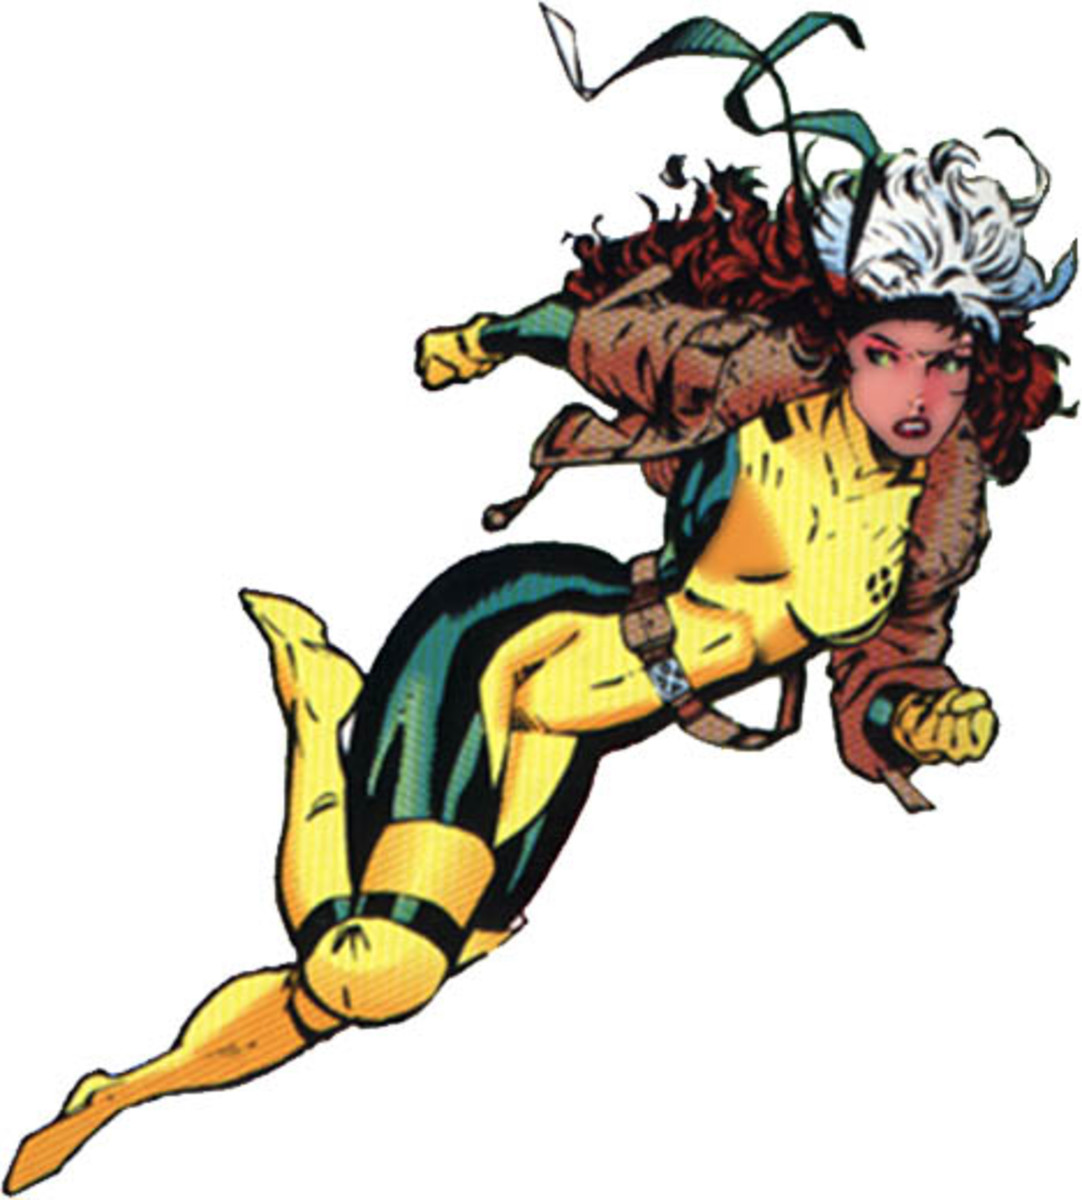 Rogue remains a favorite among the ranks of the X-Men